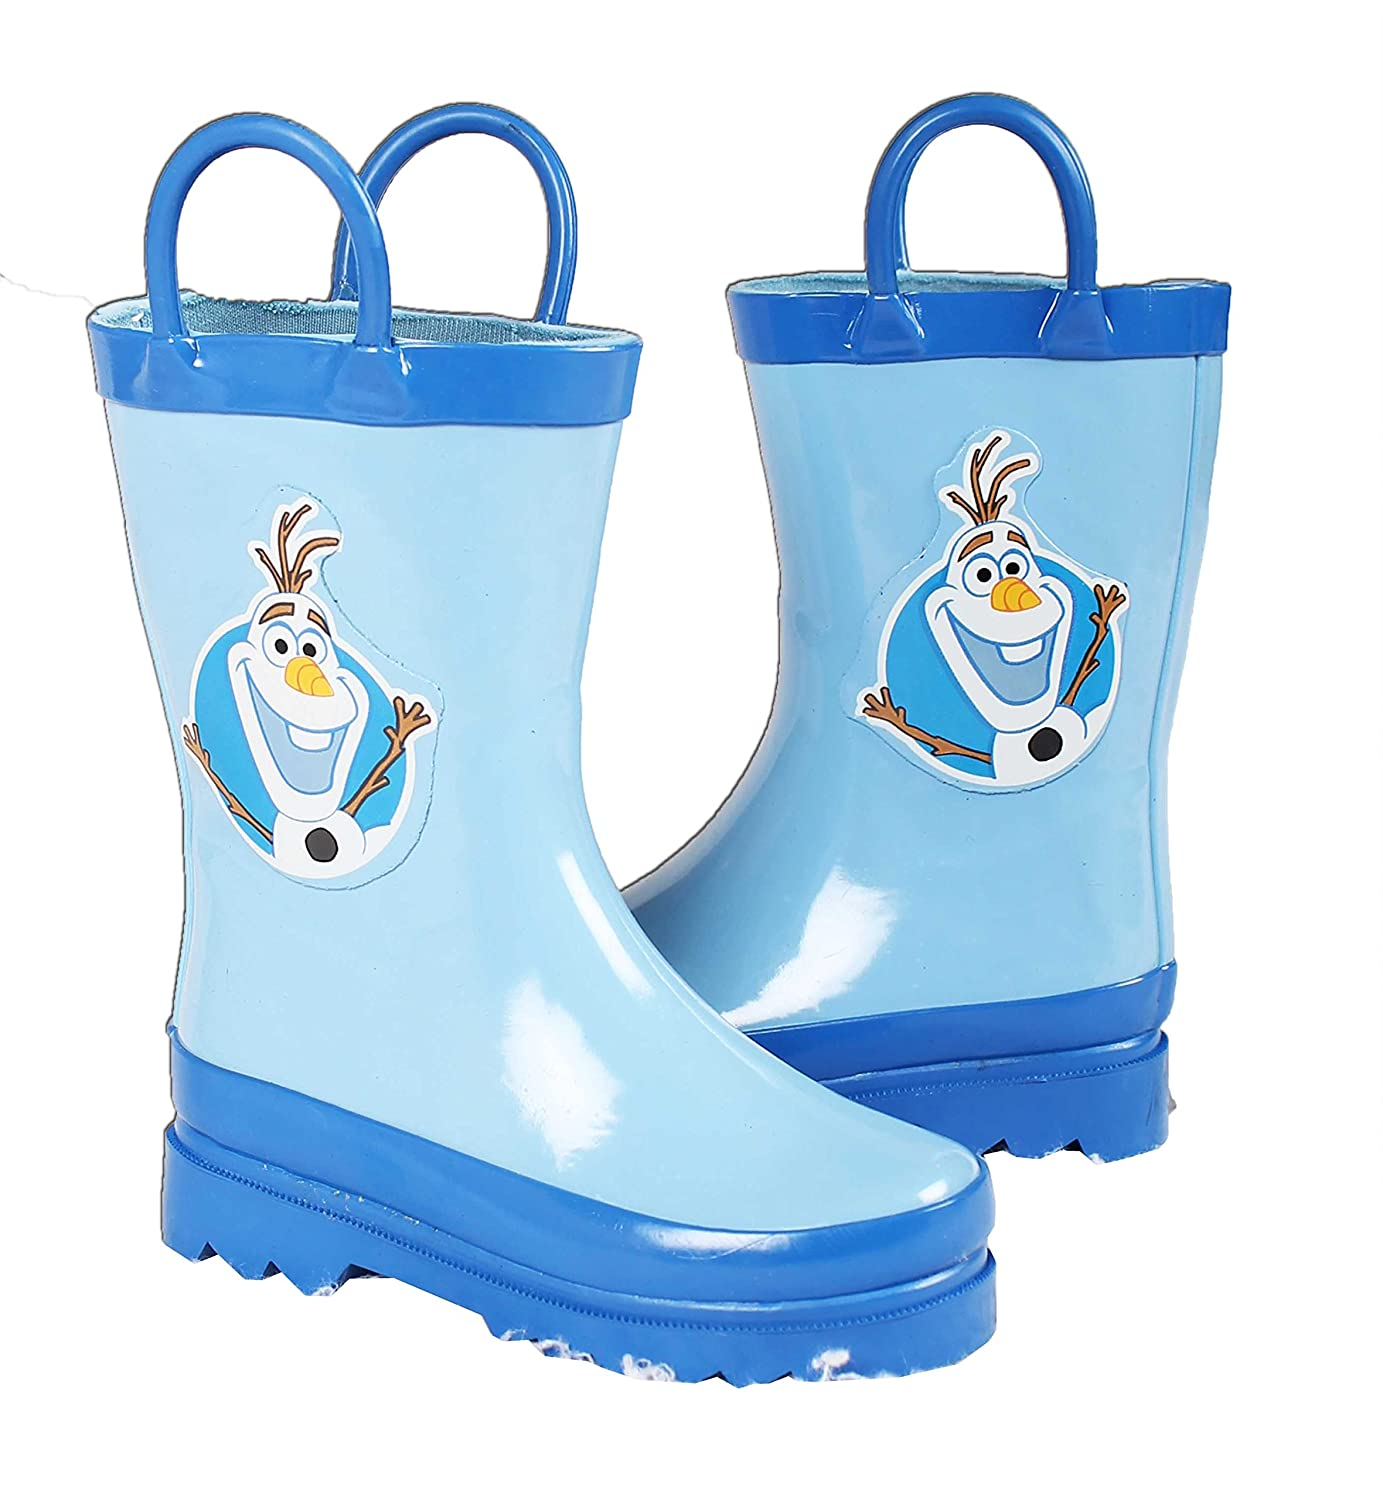 Disney Frozen Olaf Boys Blue Rain Boots